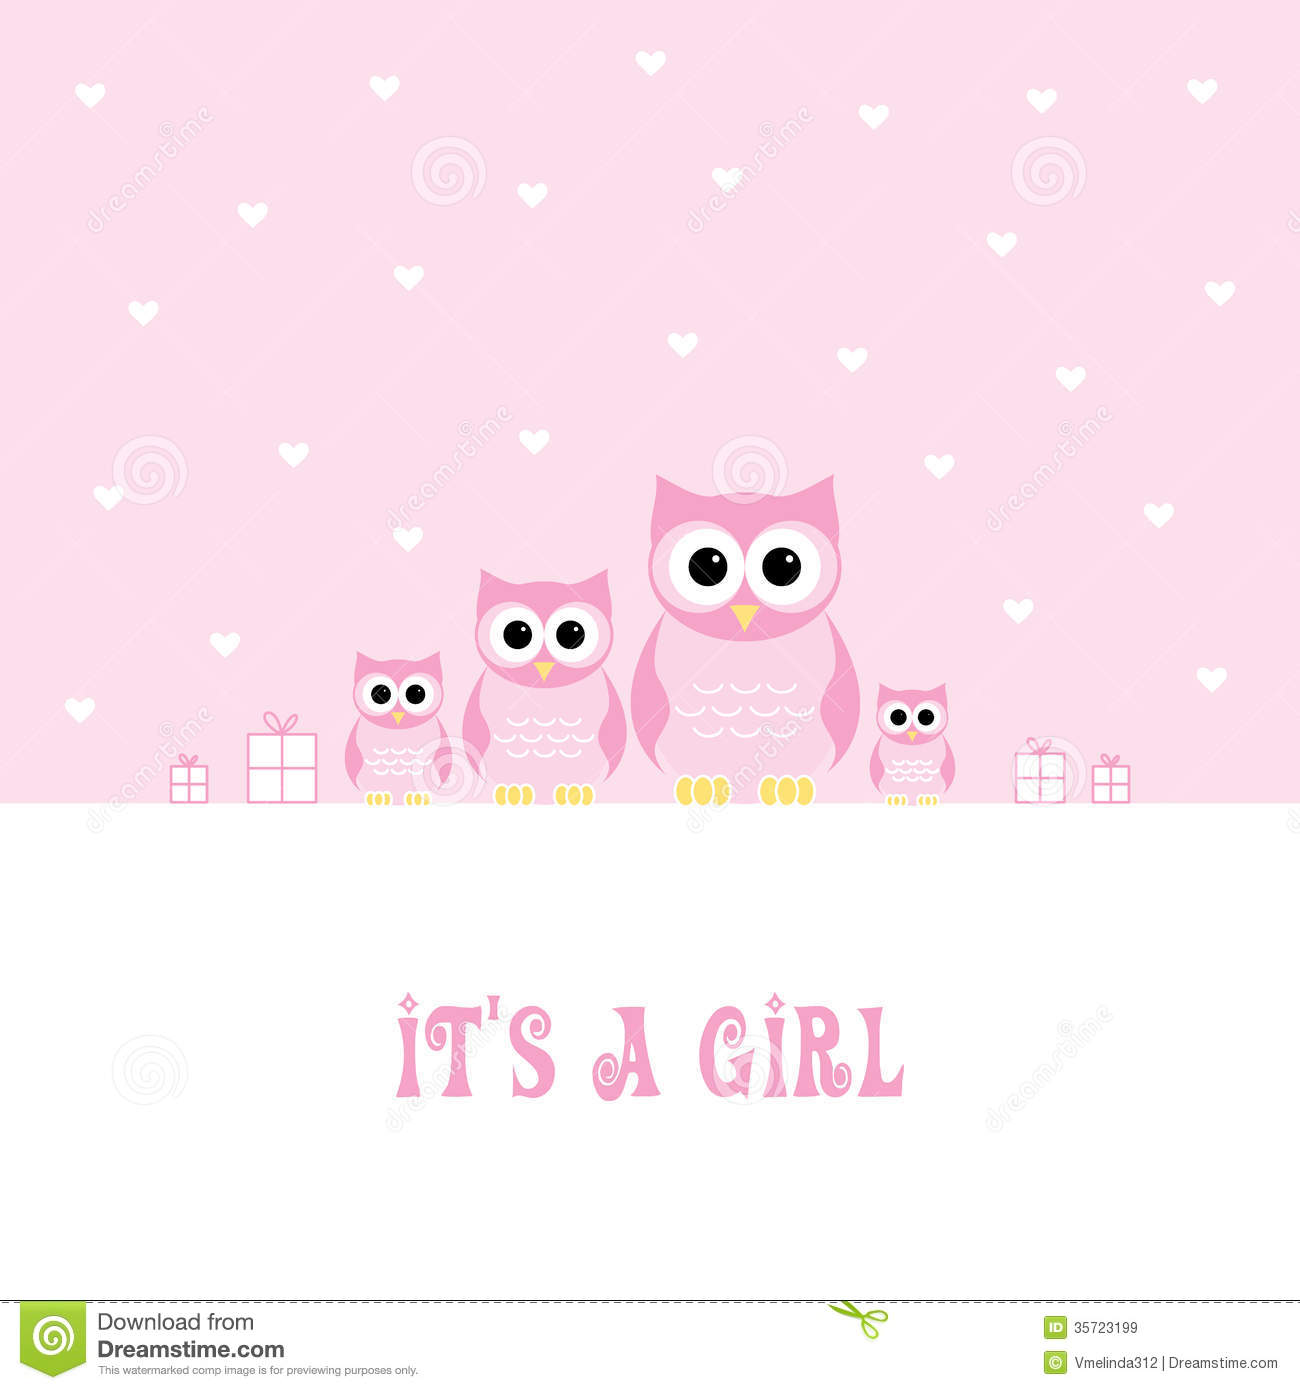 Download 1 Its a Girl Wallpaper